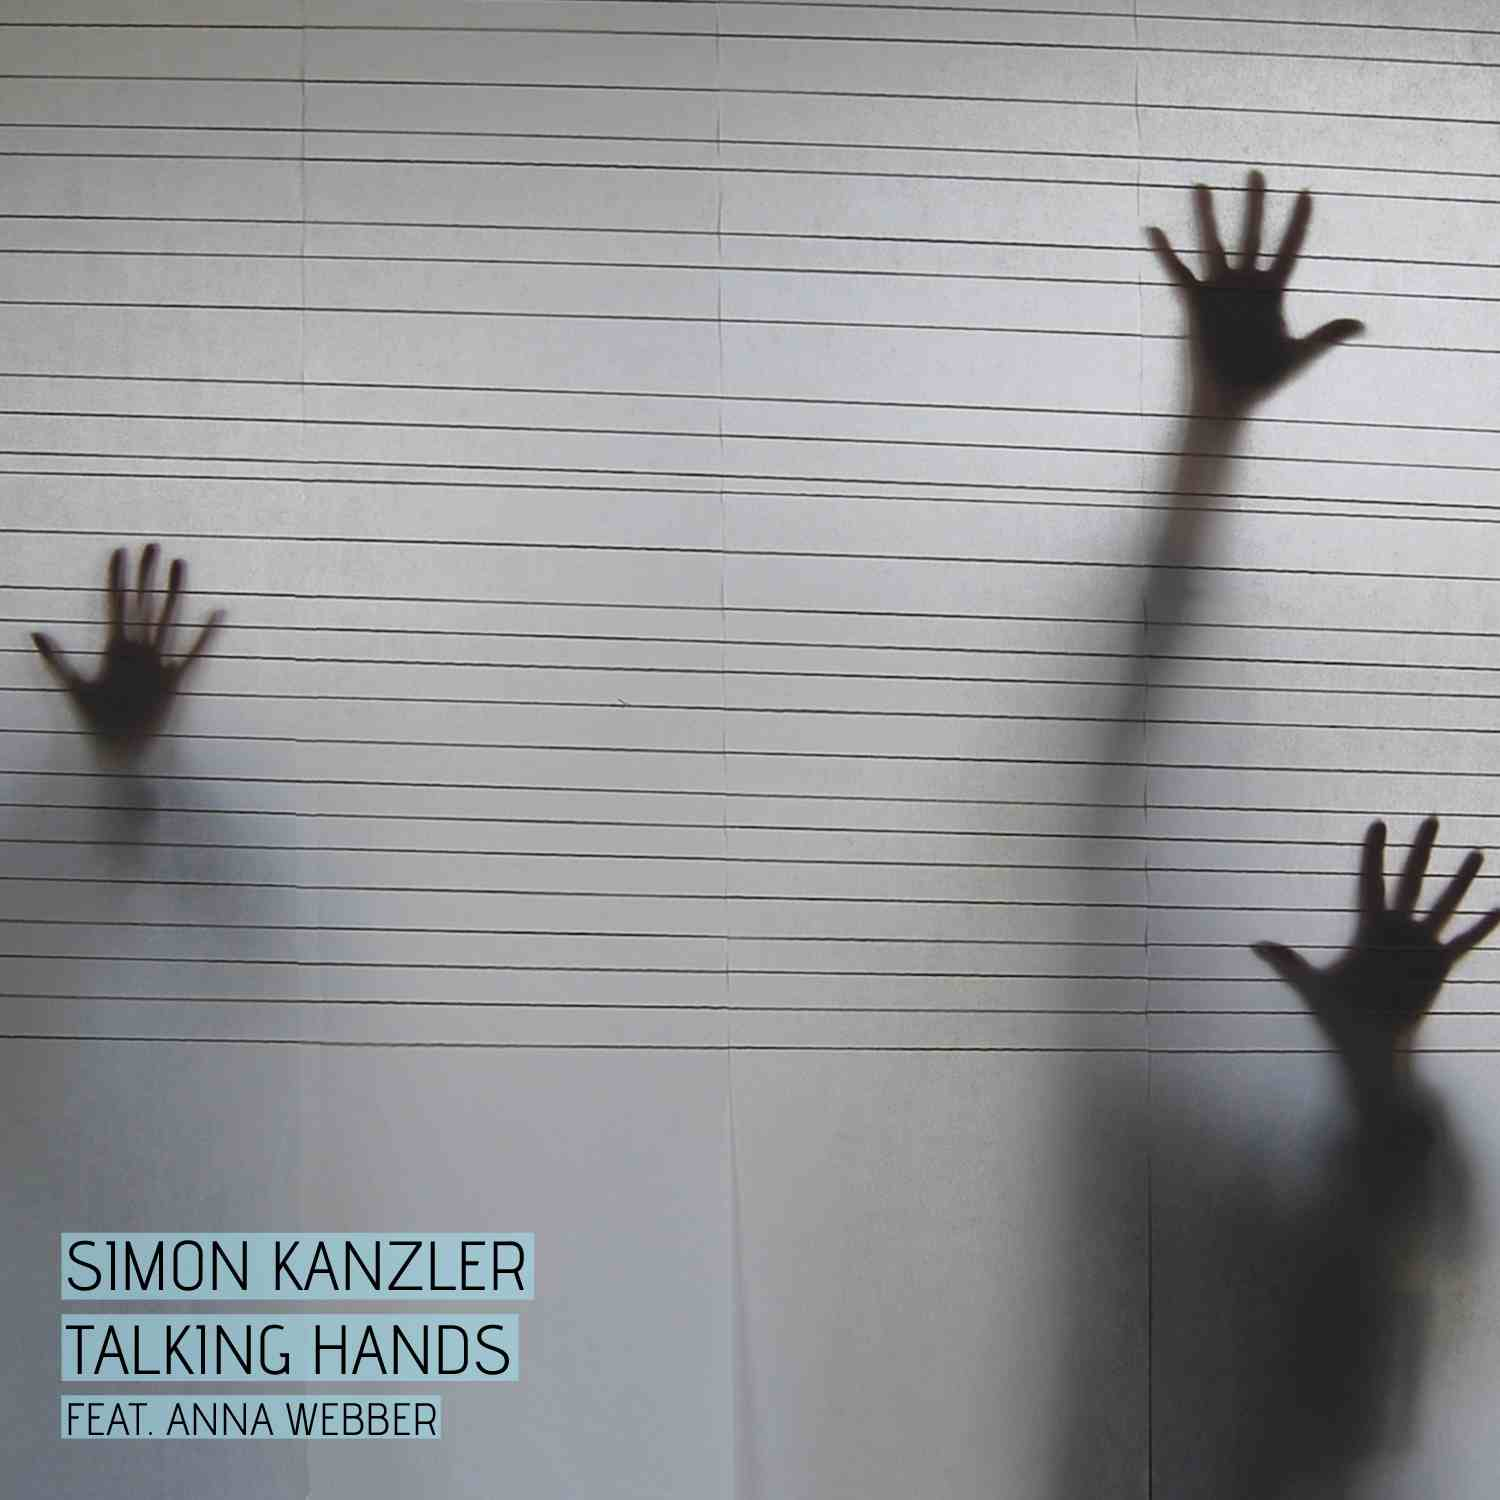 Simon Kanzler - Talking Hands feat. Anna Webber